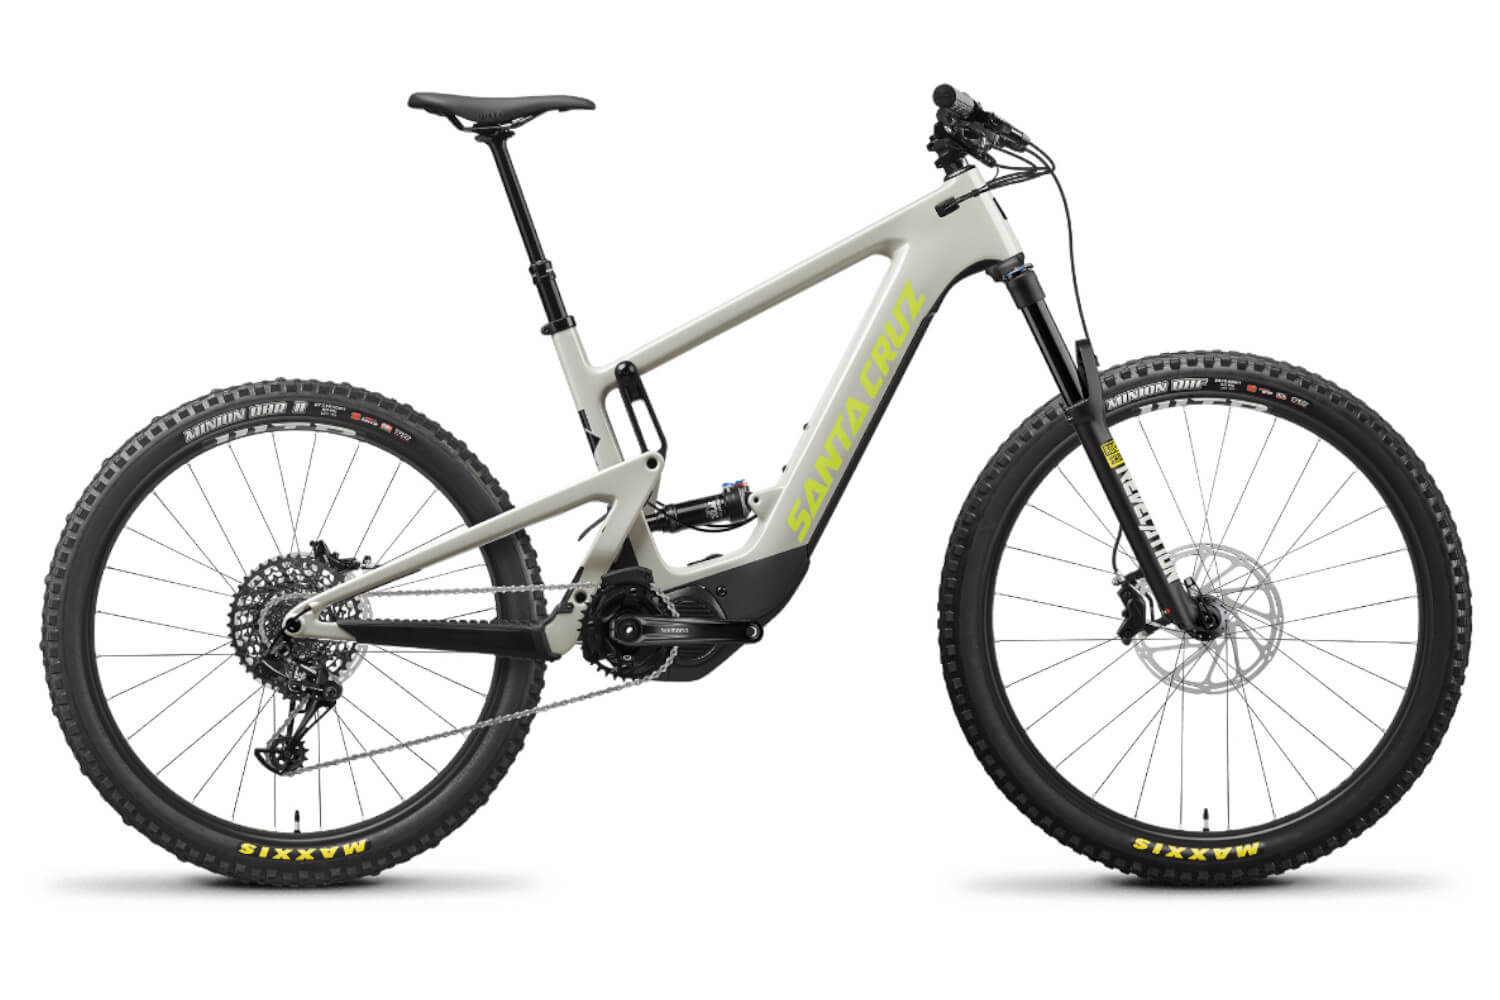 Santa Cruz Heckler 8 CC MX S 2021